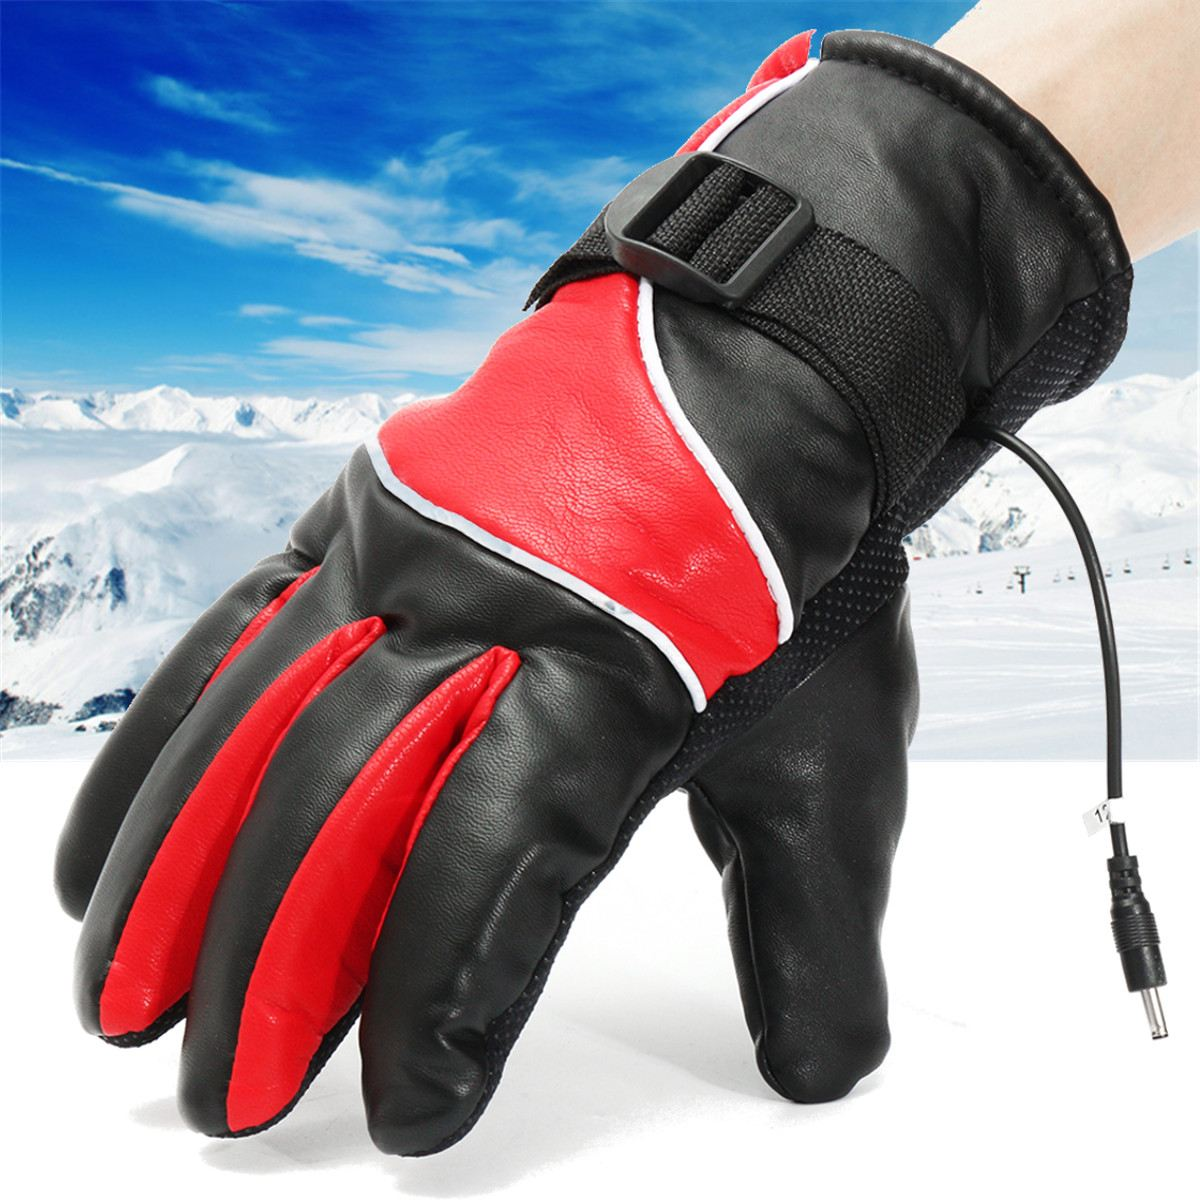 1 Pair 12V Motorcycle Bike <font><b>Winter</b></font> Warm <font><b>Gloves</b></font> <font><b>Electric</b></font> <font><b>Heated</b></font> <font><b>Gloves</b></font> <font><b>Waterproof</b></font> Fashion Ski <font><b>Gloves</b></font> For Outdoor Work Riding